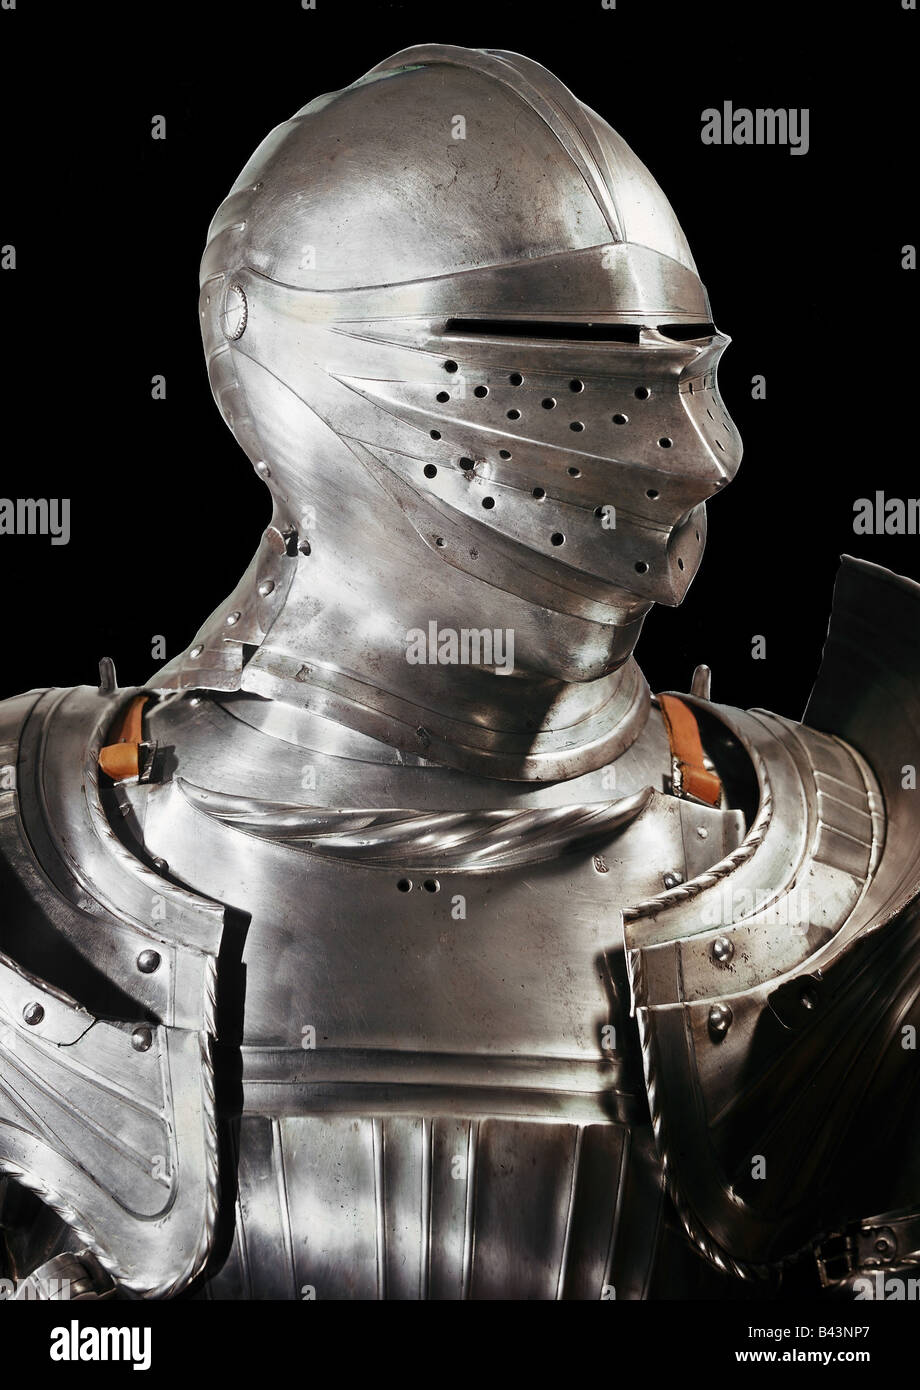 weapons / arms, amour, harness, helmet, visor, iron, embossed, Additional-Rights-Clearances-NA - Stock Image